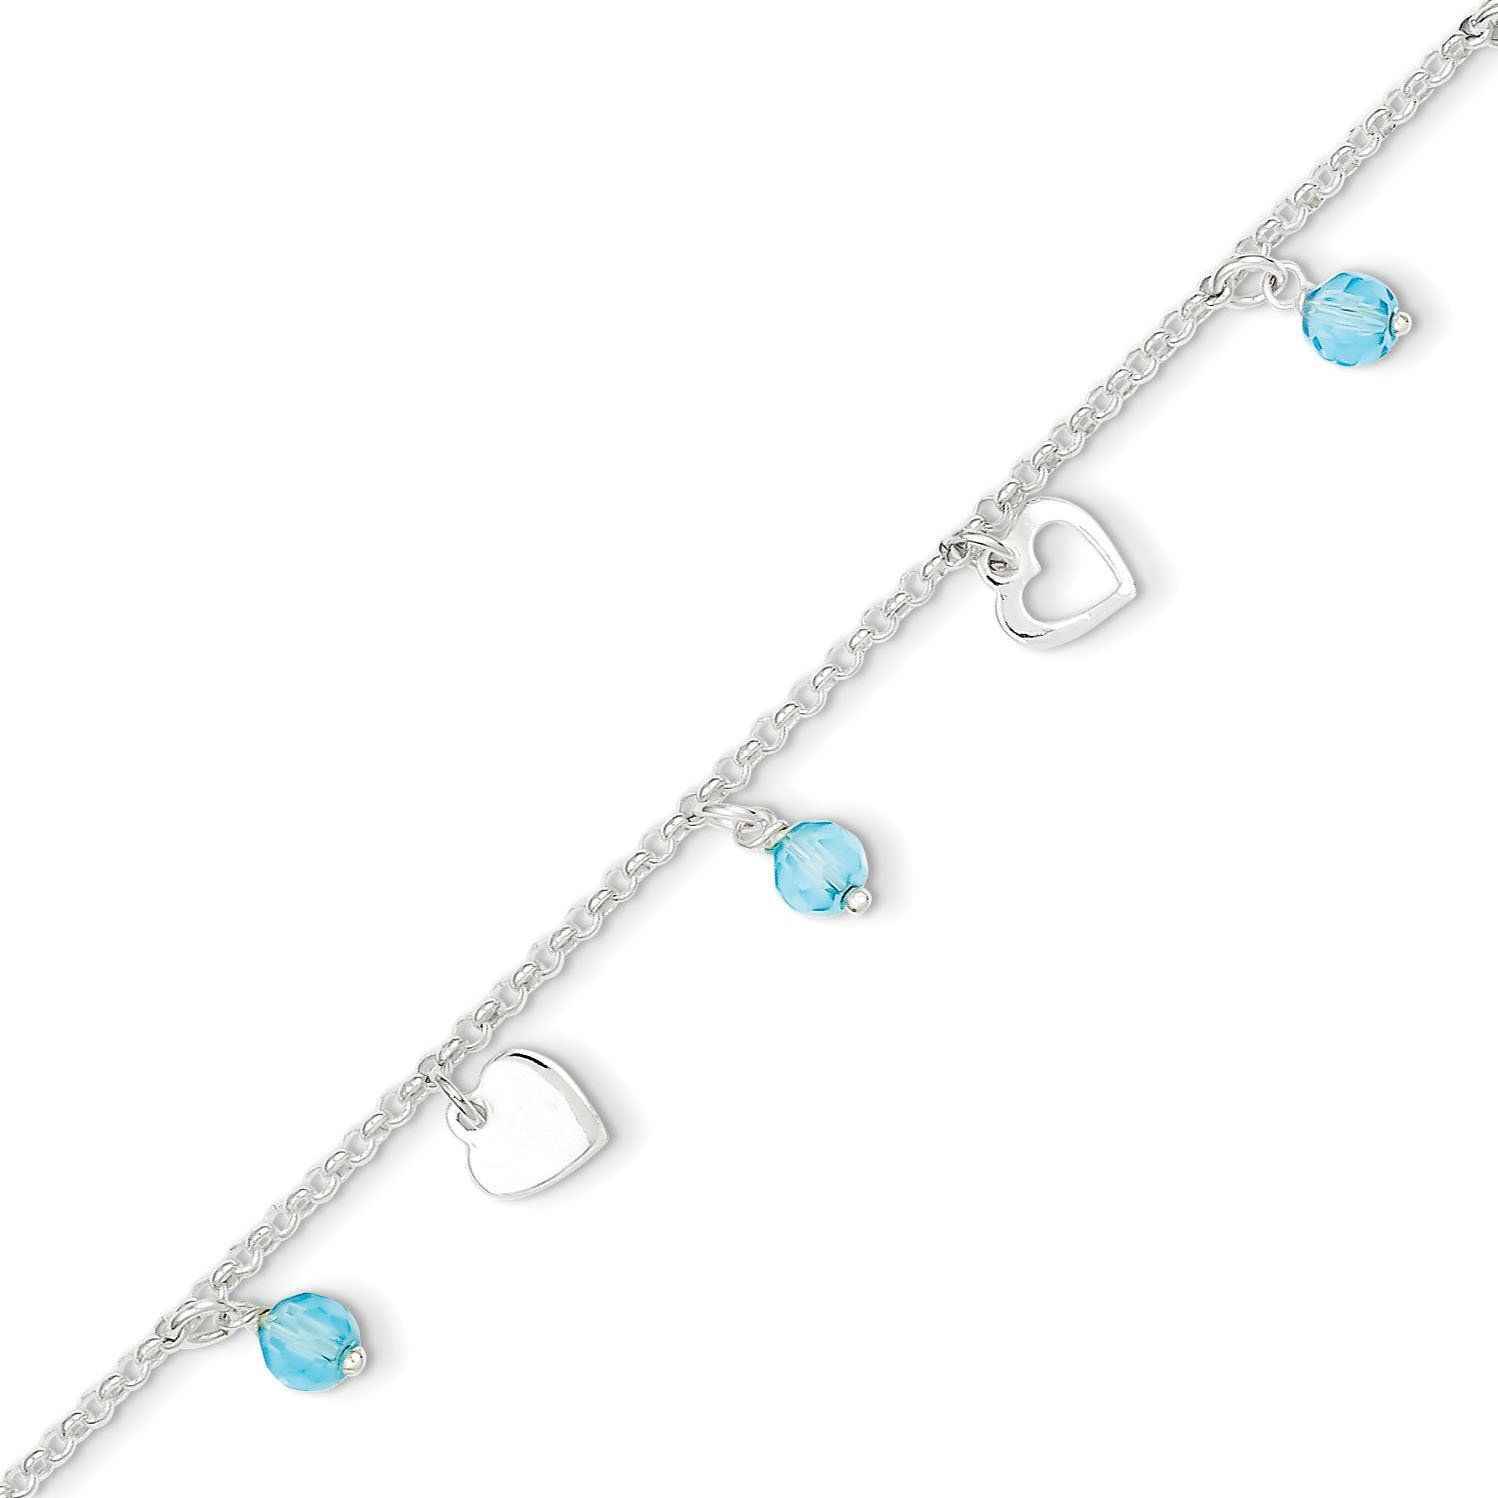 West Coast Jewelry Sterling Silver Polished Heart and Blue Glass with 1 Inch Ext. Anklet - 9 Inches Long